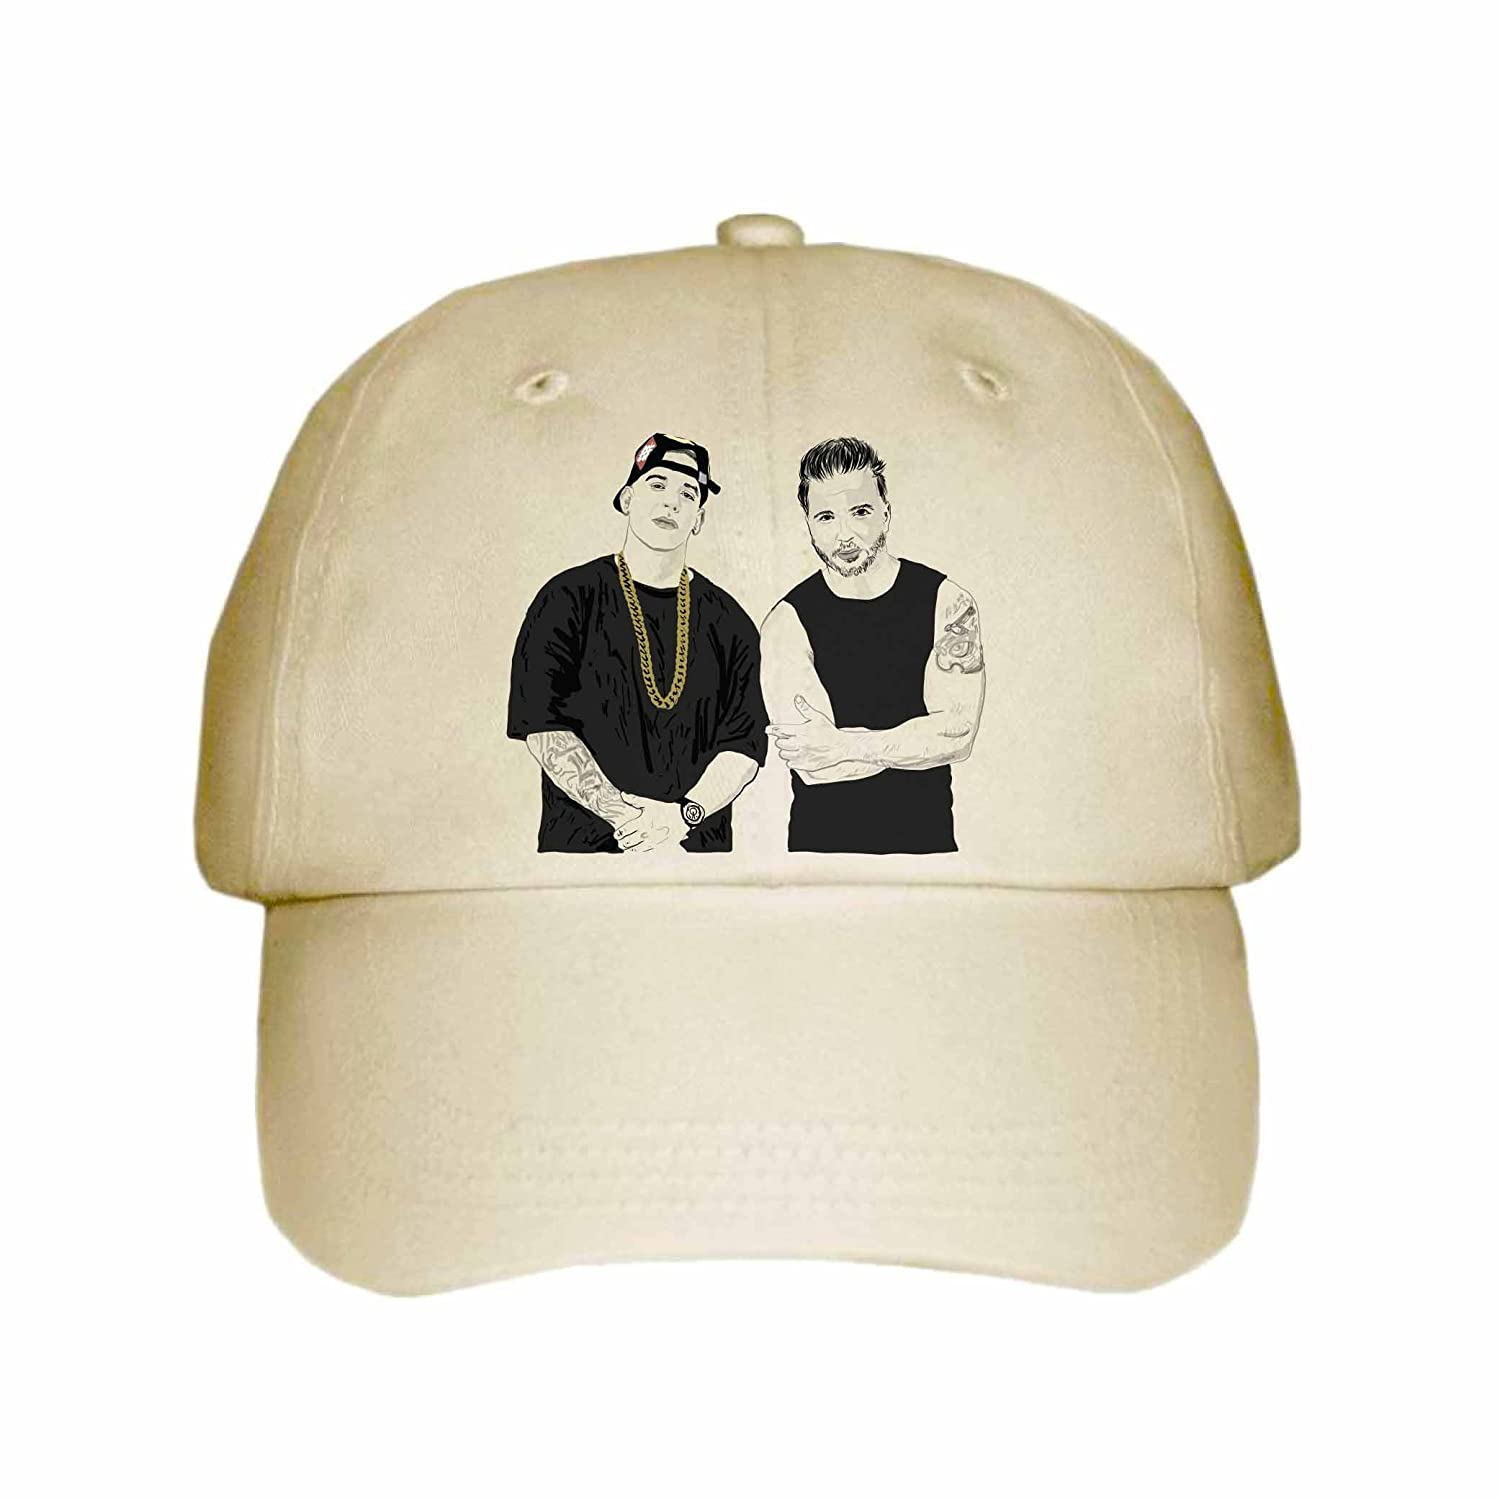 Babes   Gents Luis Fonsi and Daddy Yankee Despacito Cap Hat (Unisex)  (Khaki) at Amazon Men s Clothing store  1982716e09f